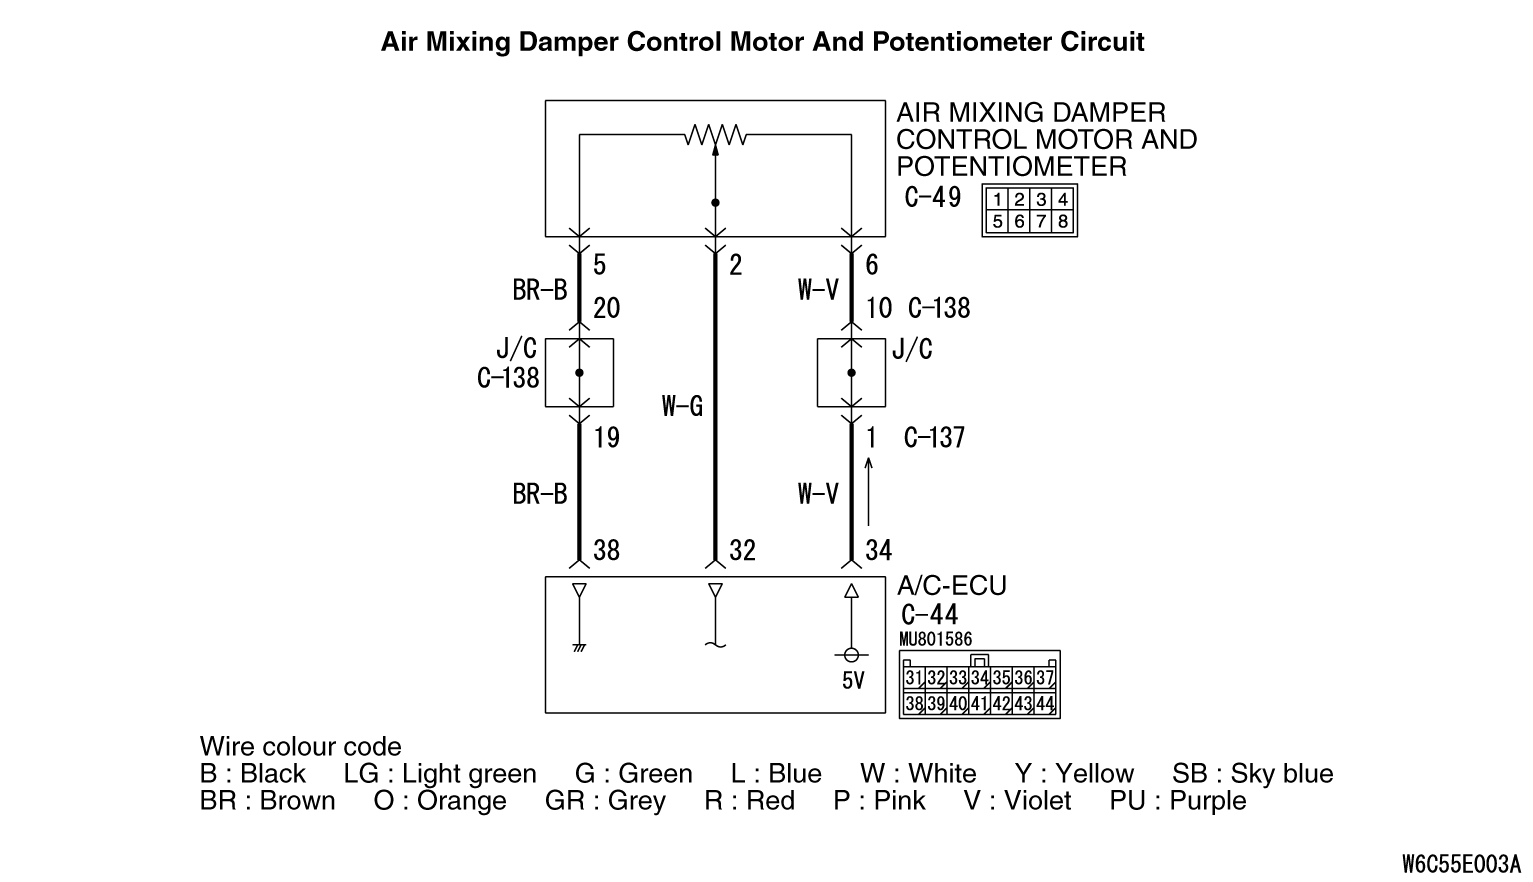 B1041,B1042: Potentiometer system for the air mixing damper